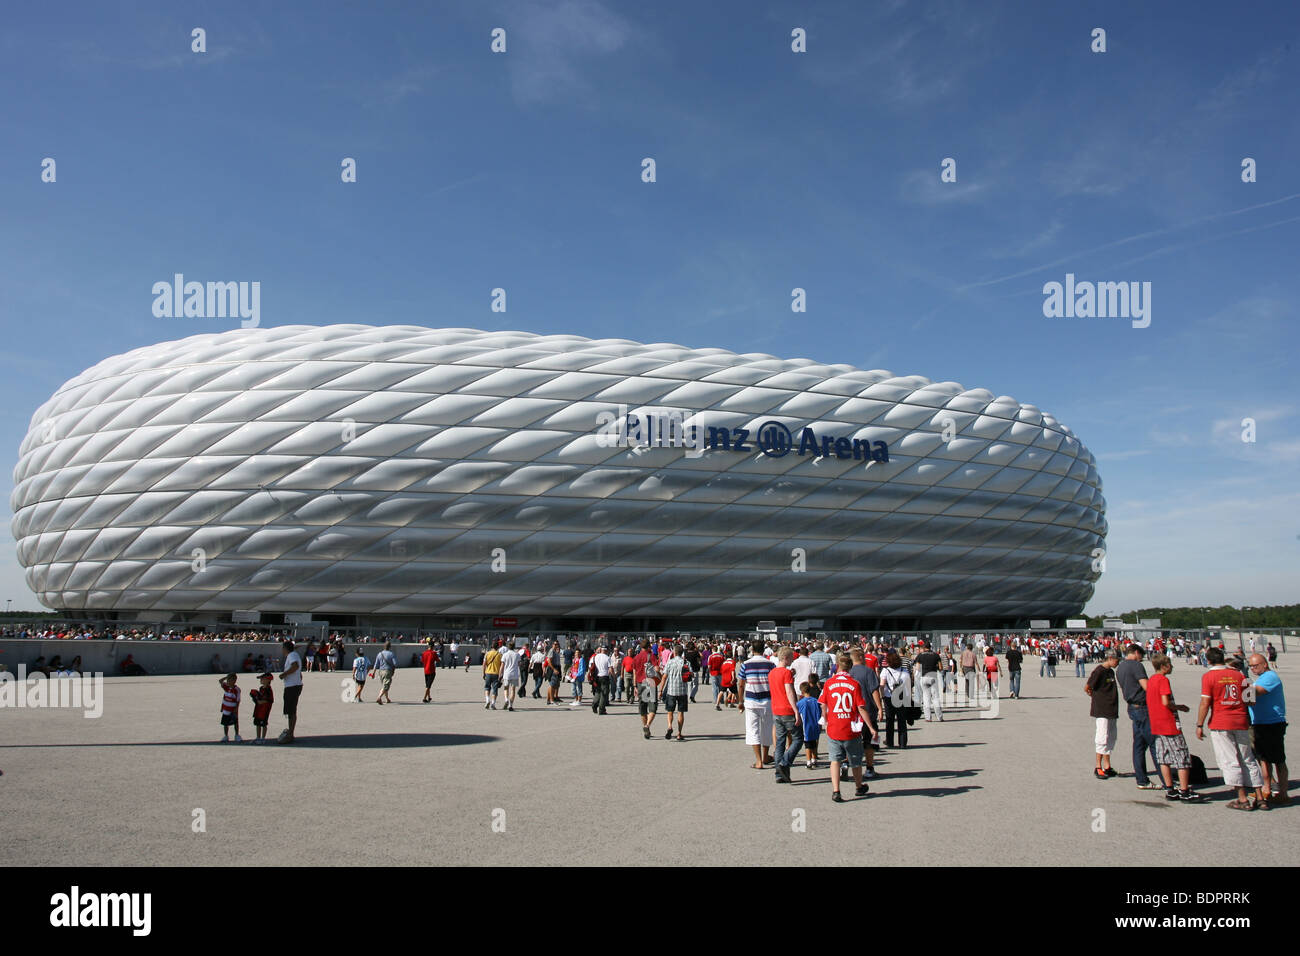 The Allianz Arena in Munich, Germany - Stock Image